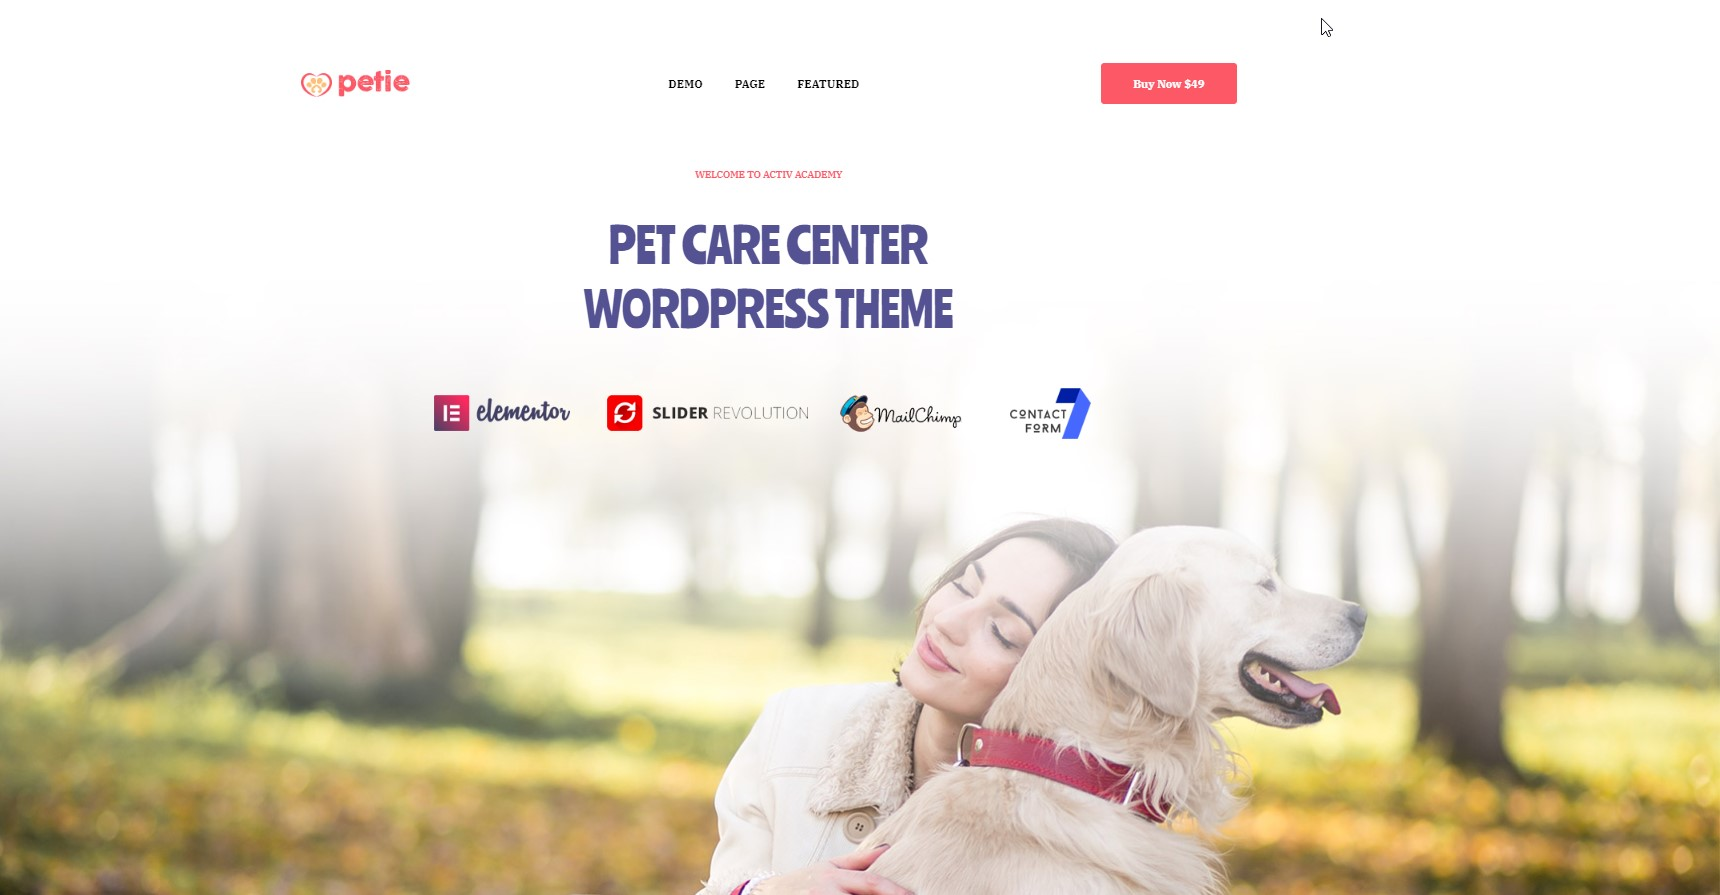 Petie - Pet Care Center WordPress Theme